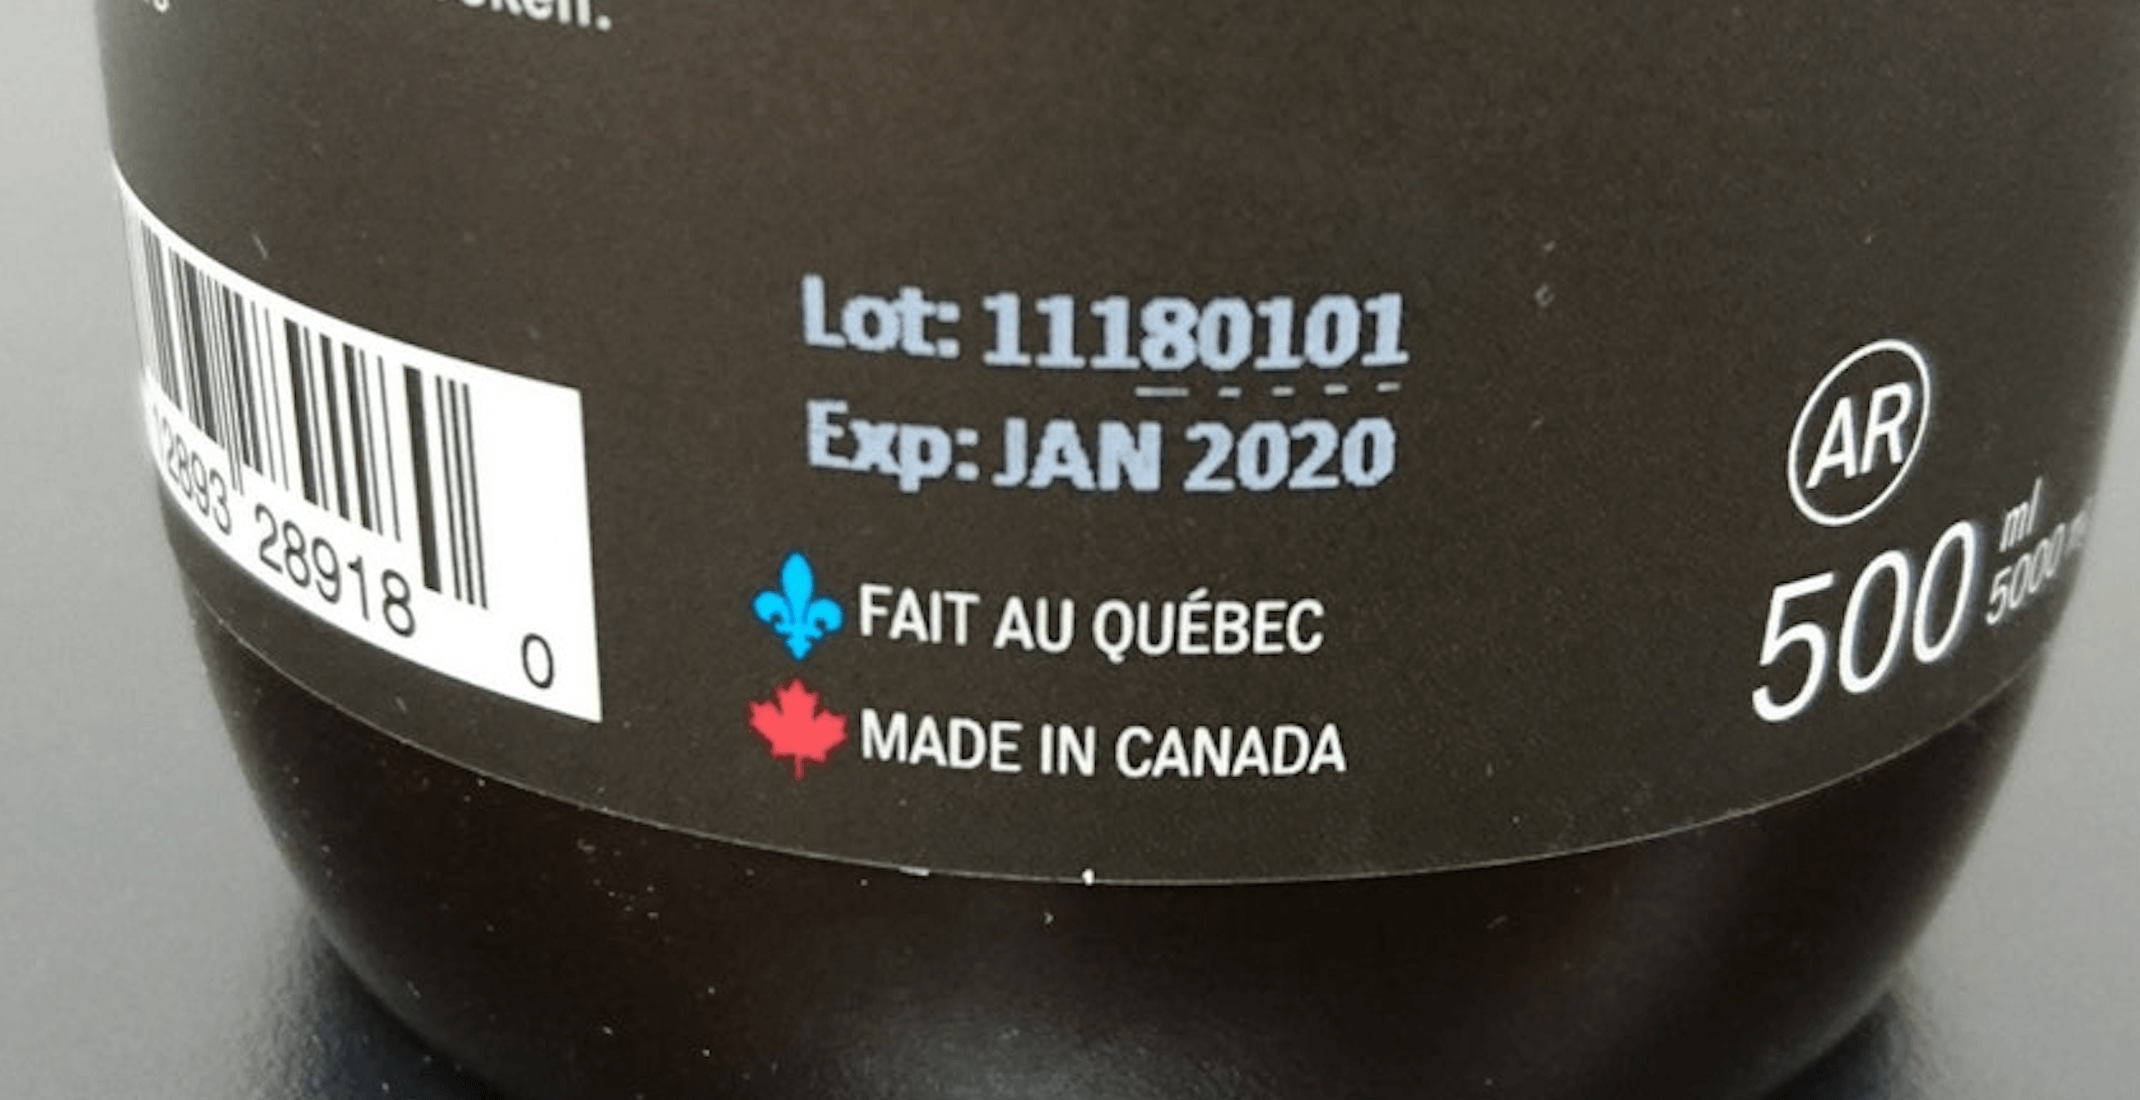 Spotted on Reddit: This confusing product label sums up the Quebec-Canada relationship